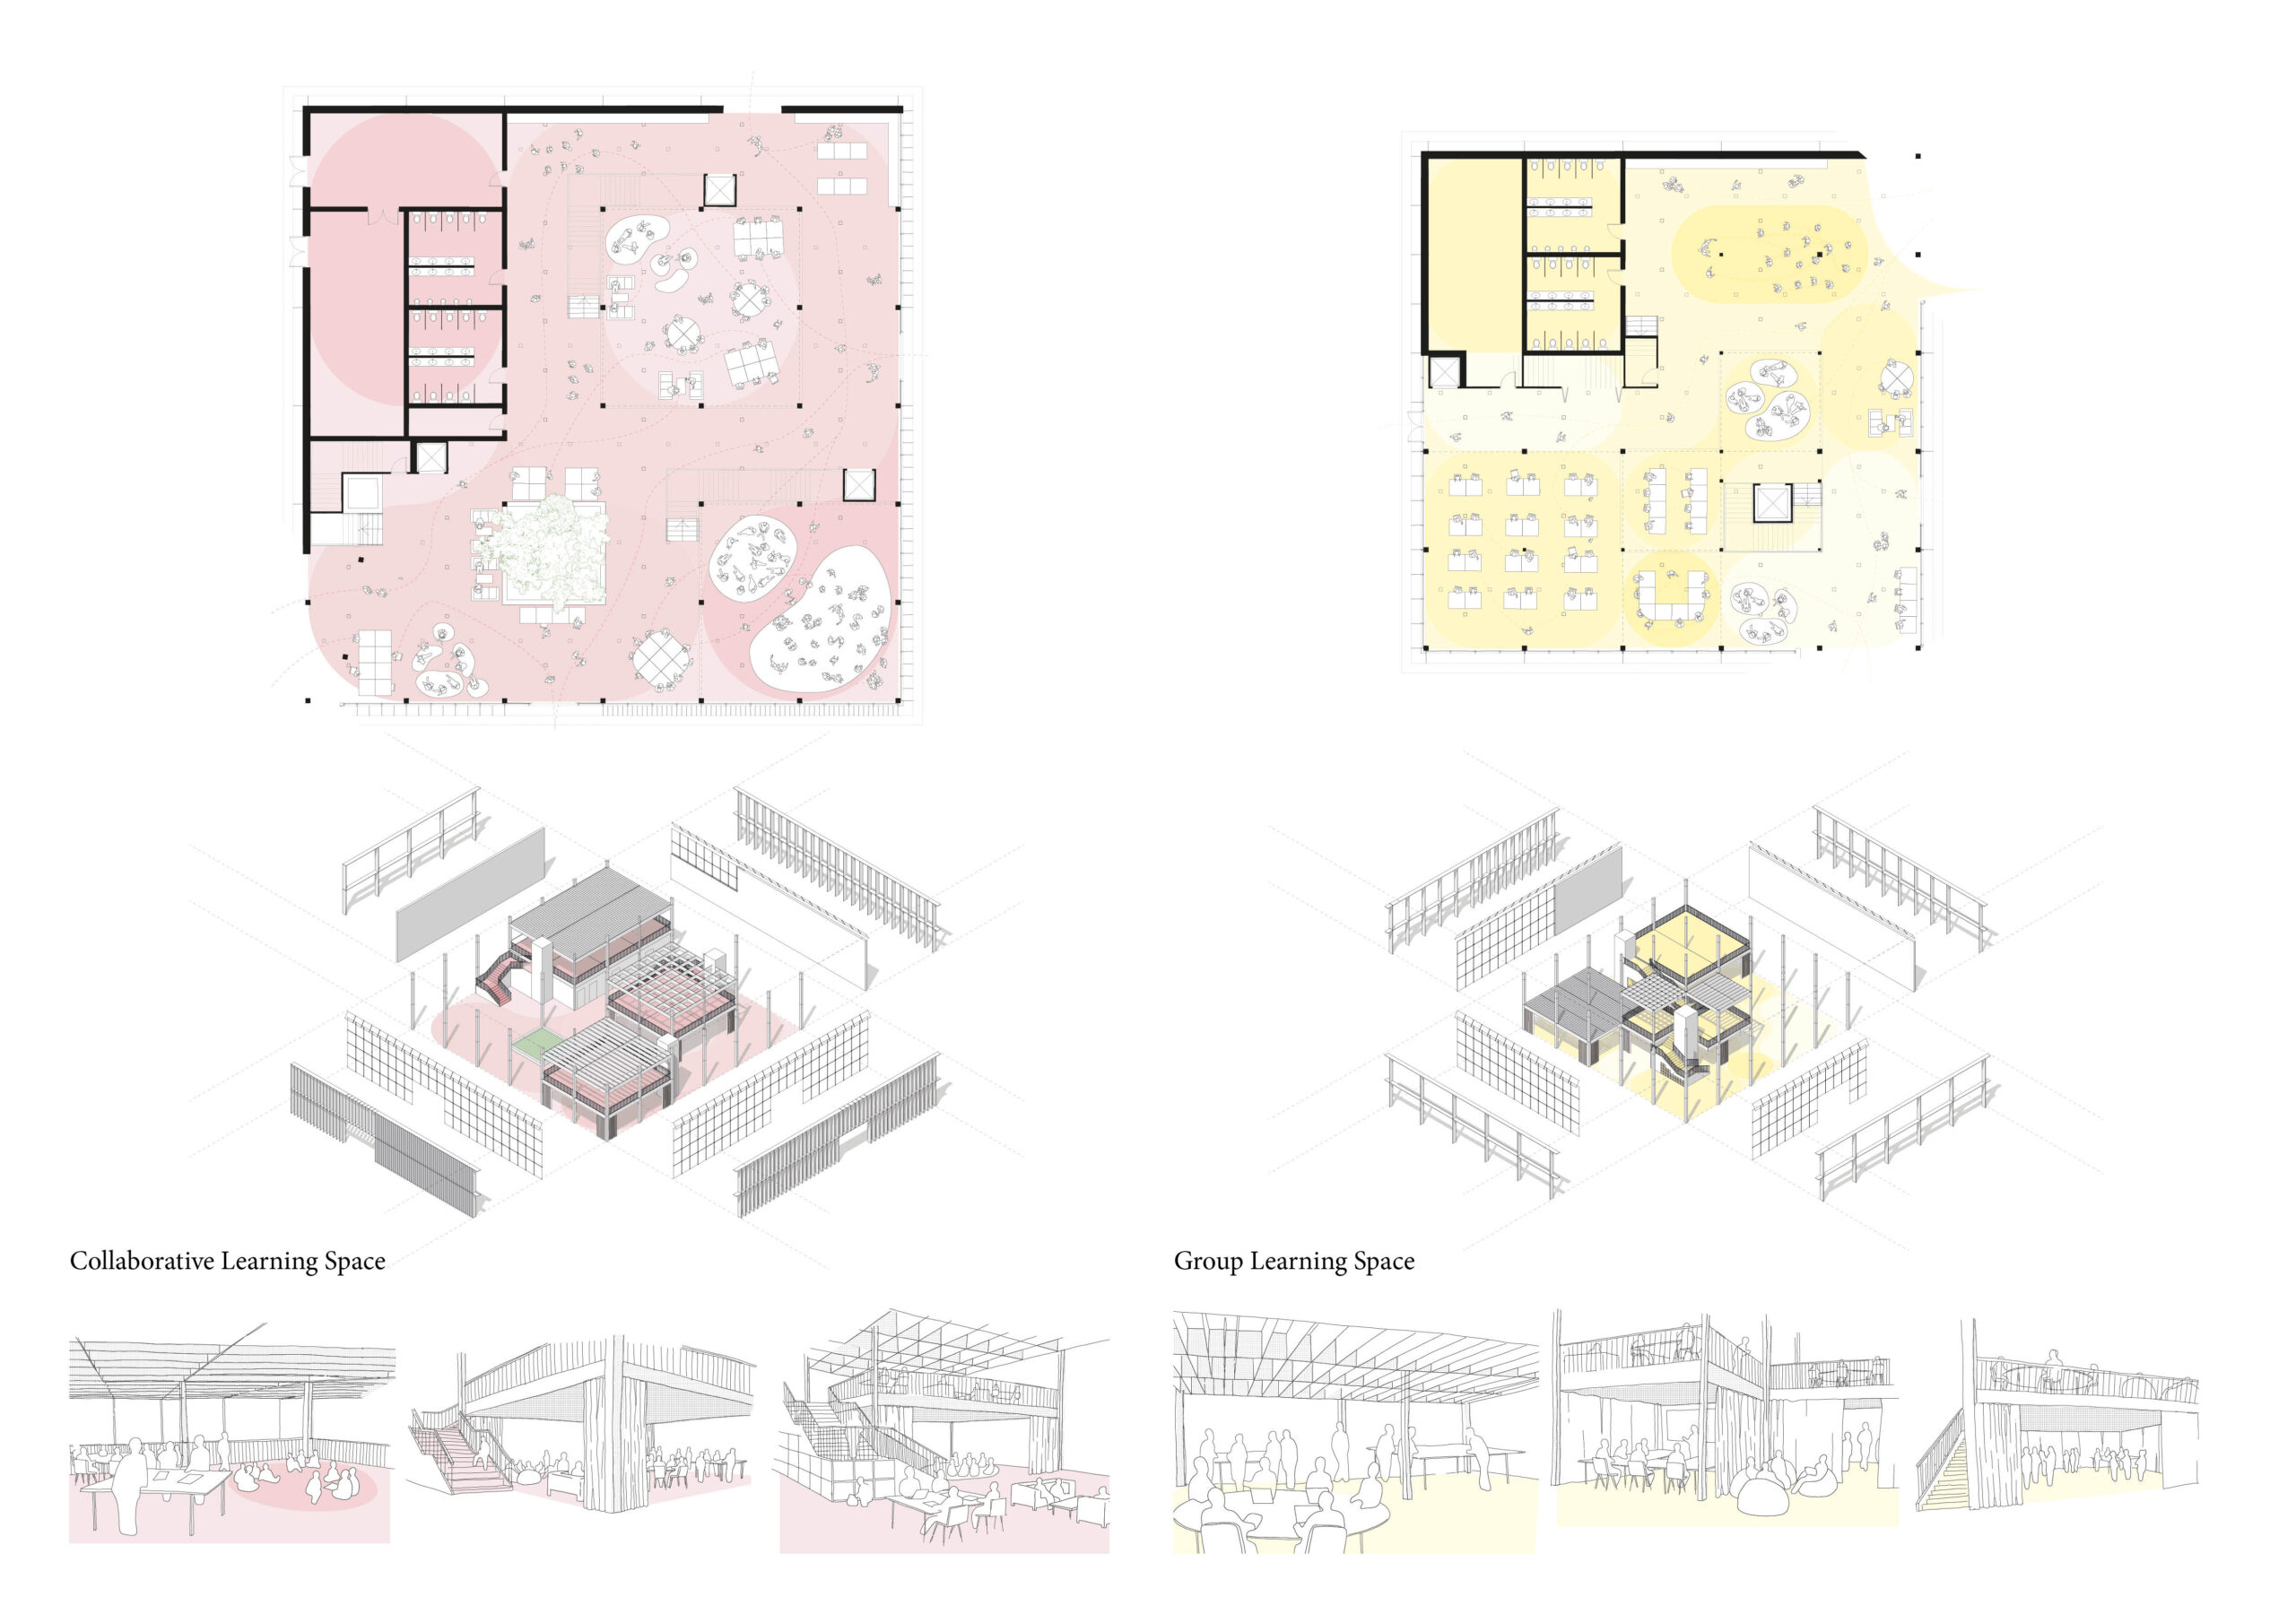 Portfolio Page of the Collaborative and Group Learning Spaces, with plans, axonometric drawings and perspectives.